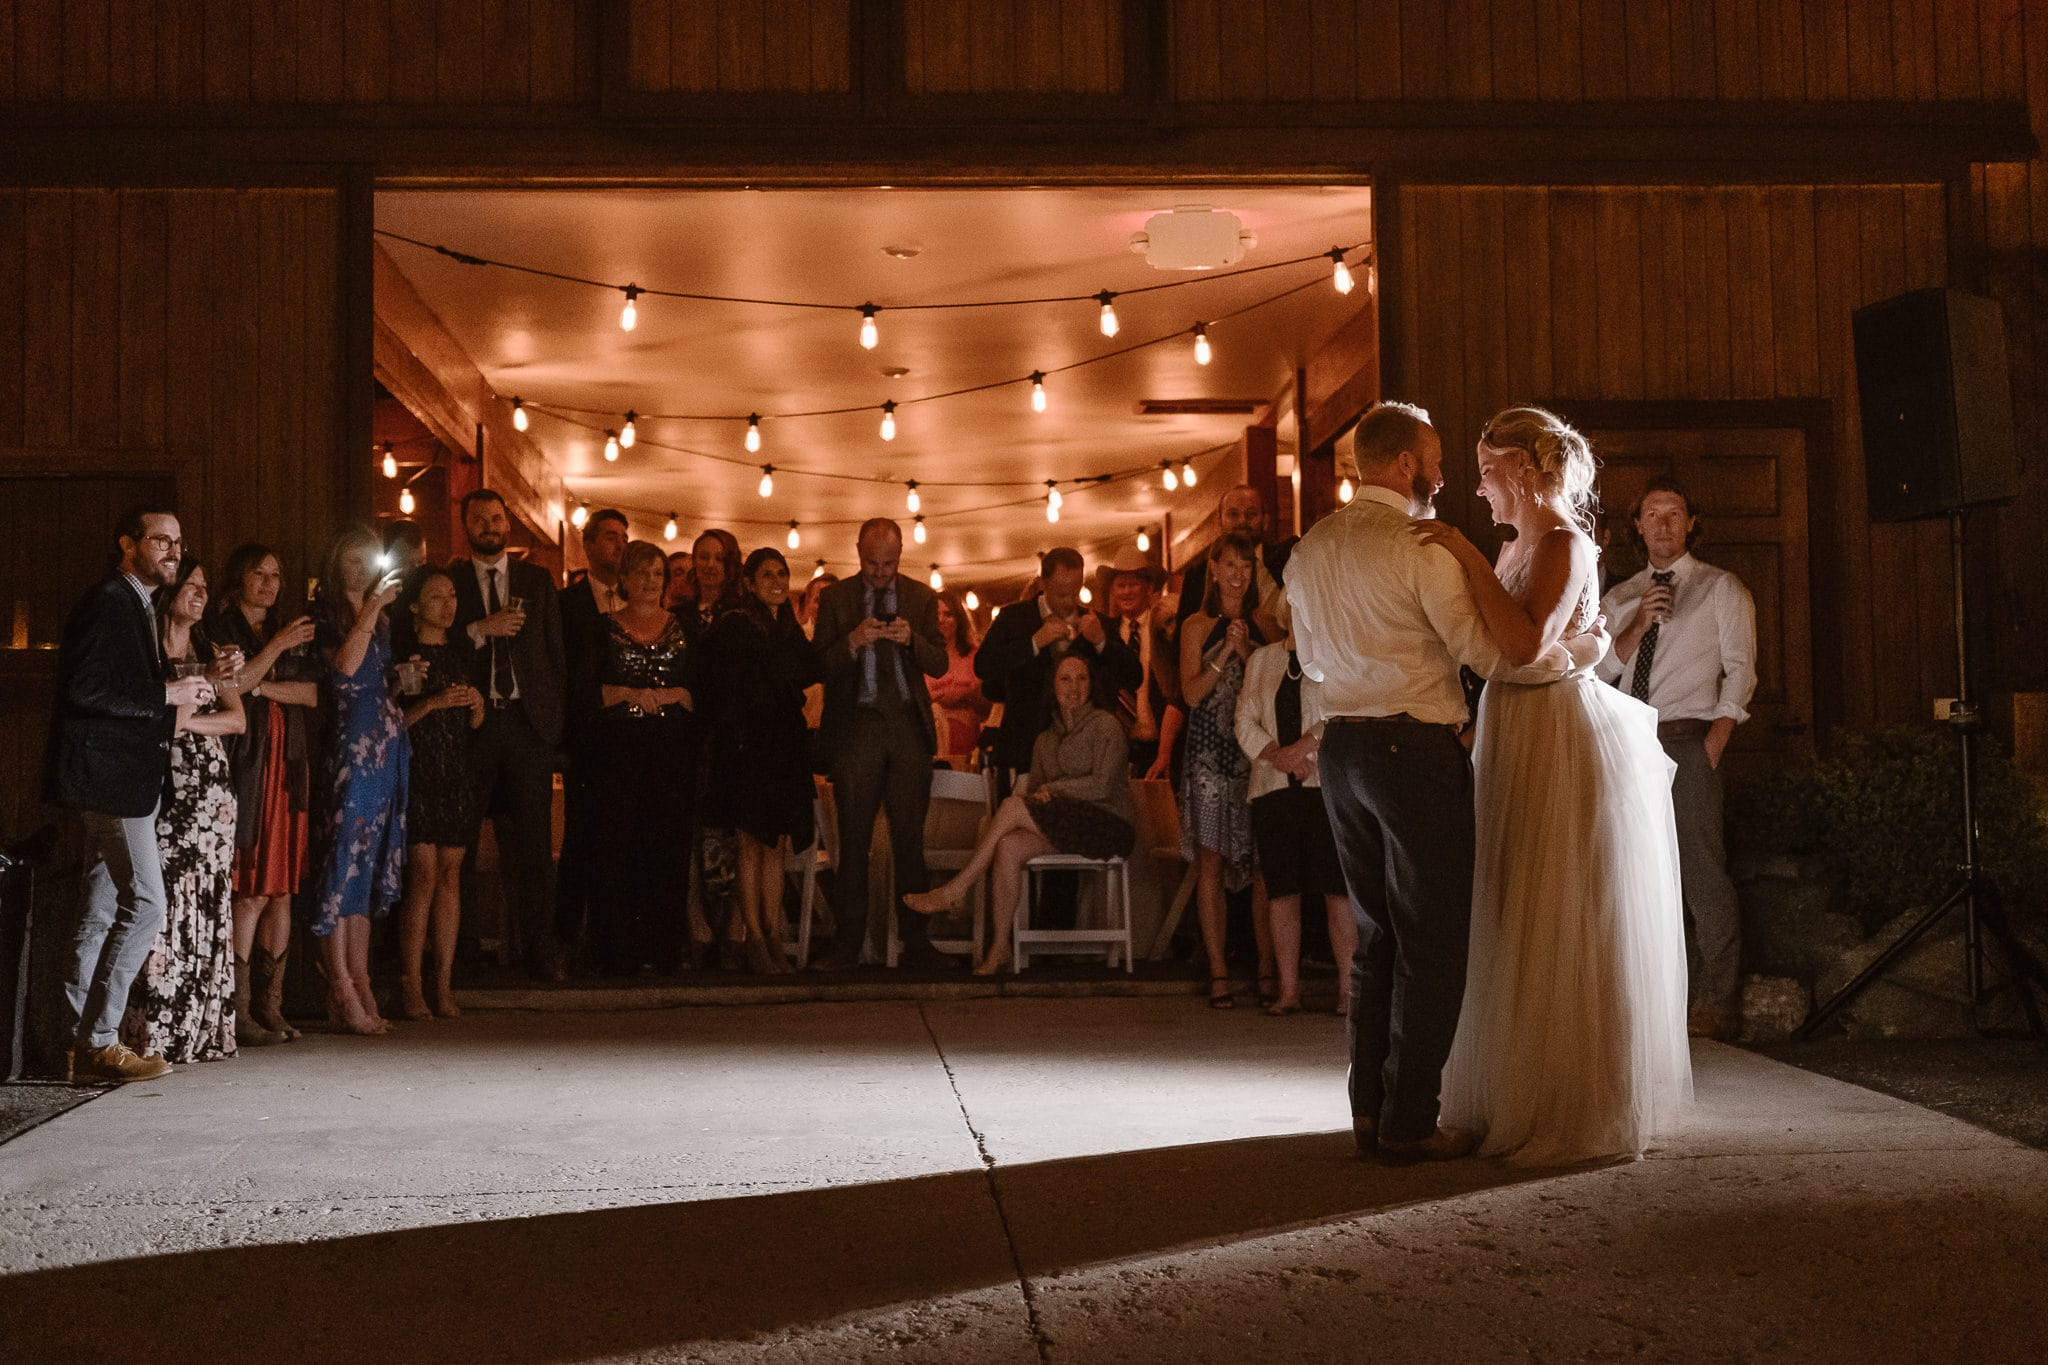 Steamboat Springs wedding photographer, La Joya Dulce wedding, Colorado ranch wedding venues, bride and groom first dance under market lights